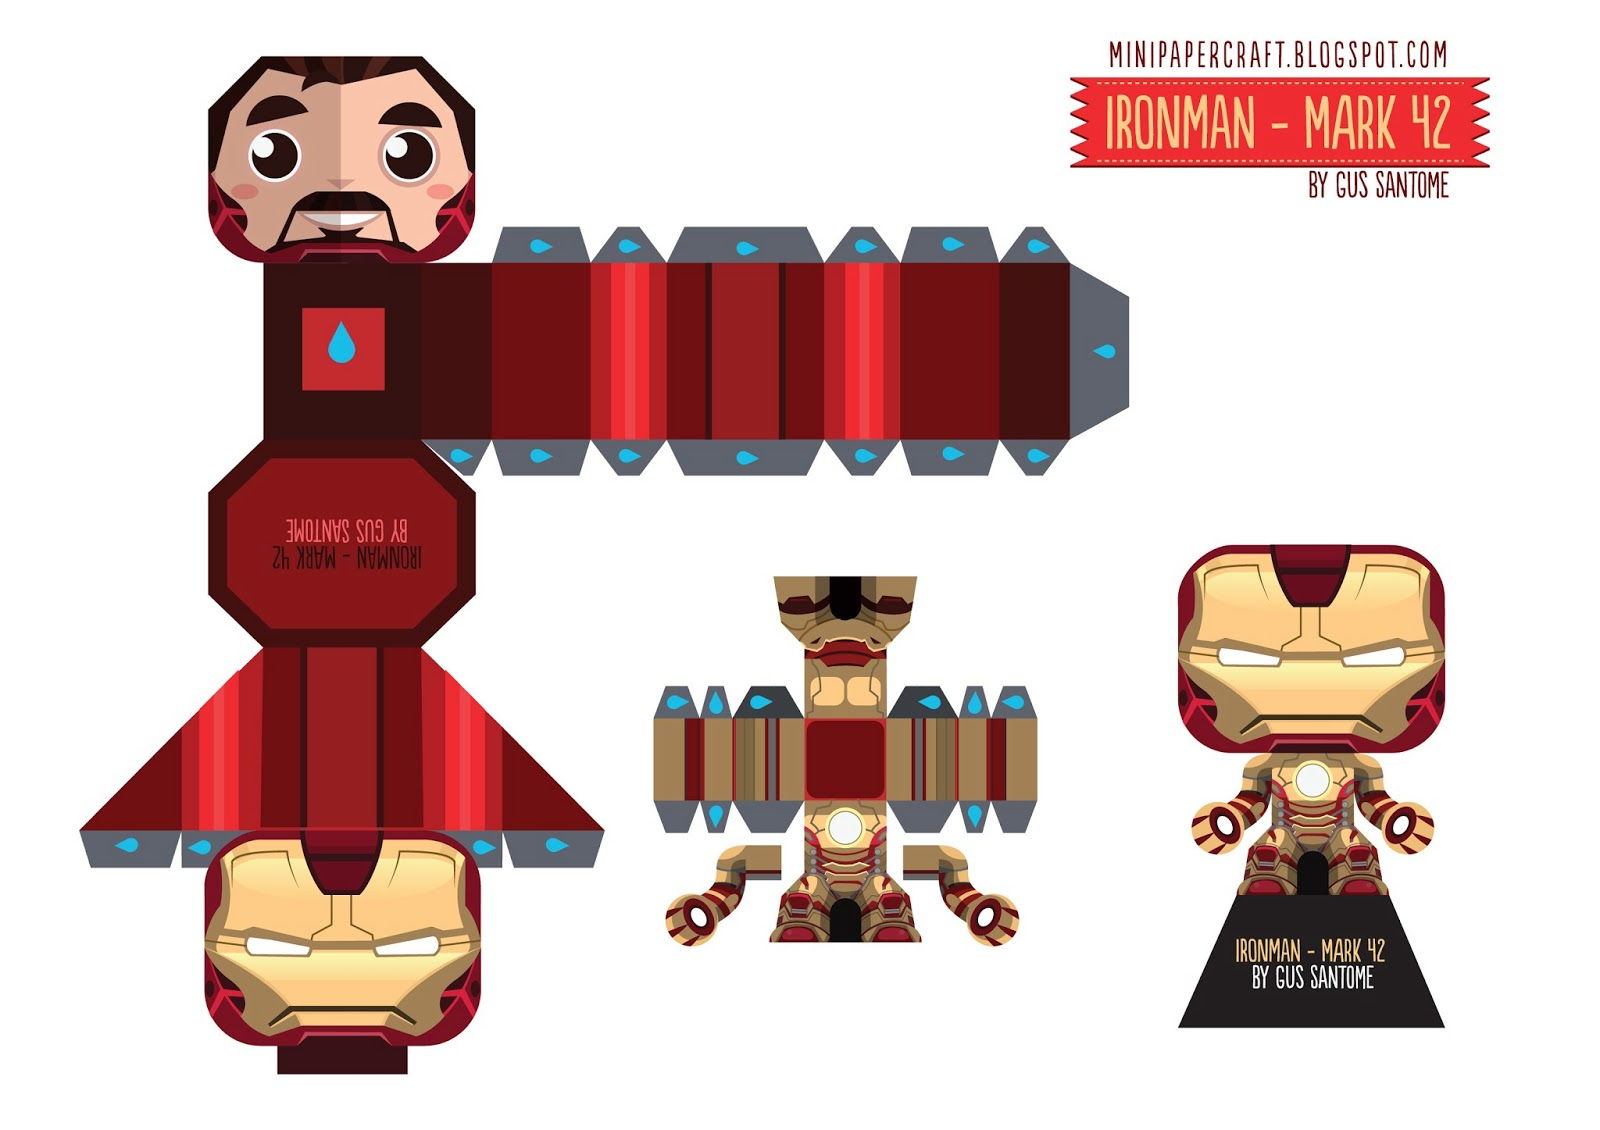 IRONMAN 3 - MARK 42 ARMOR